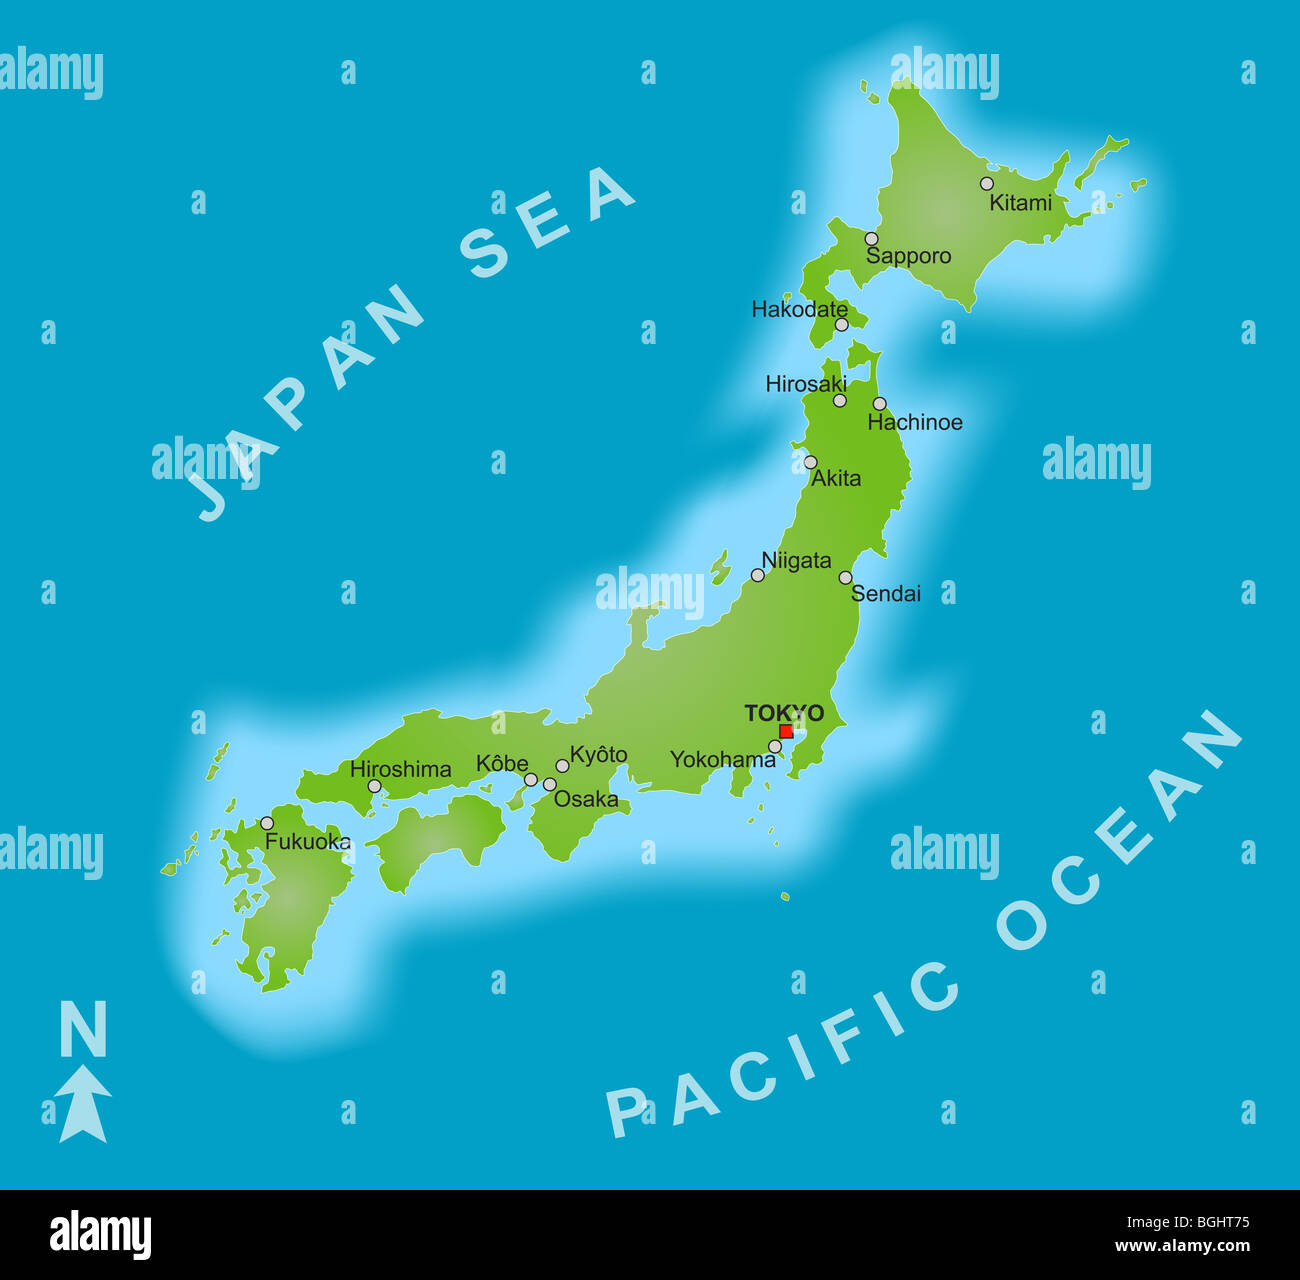 A Stylized Map Of Japan Showing Different Big Cities Stock Photo